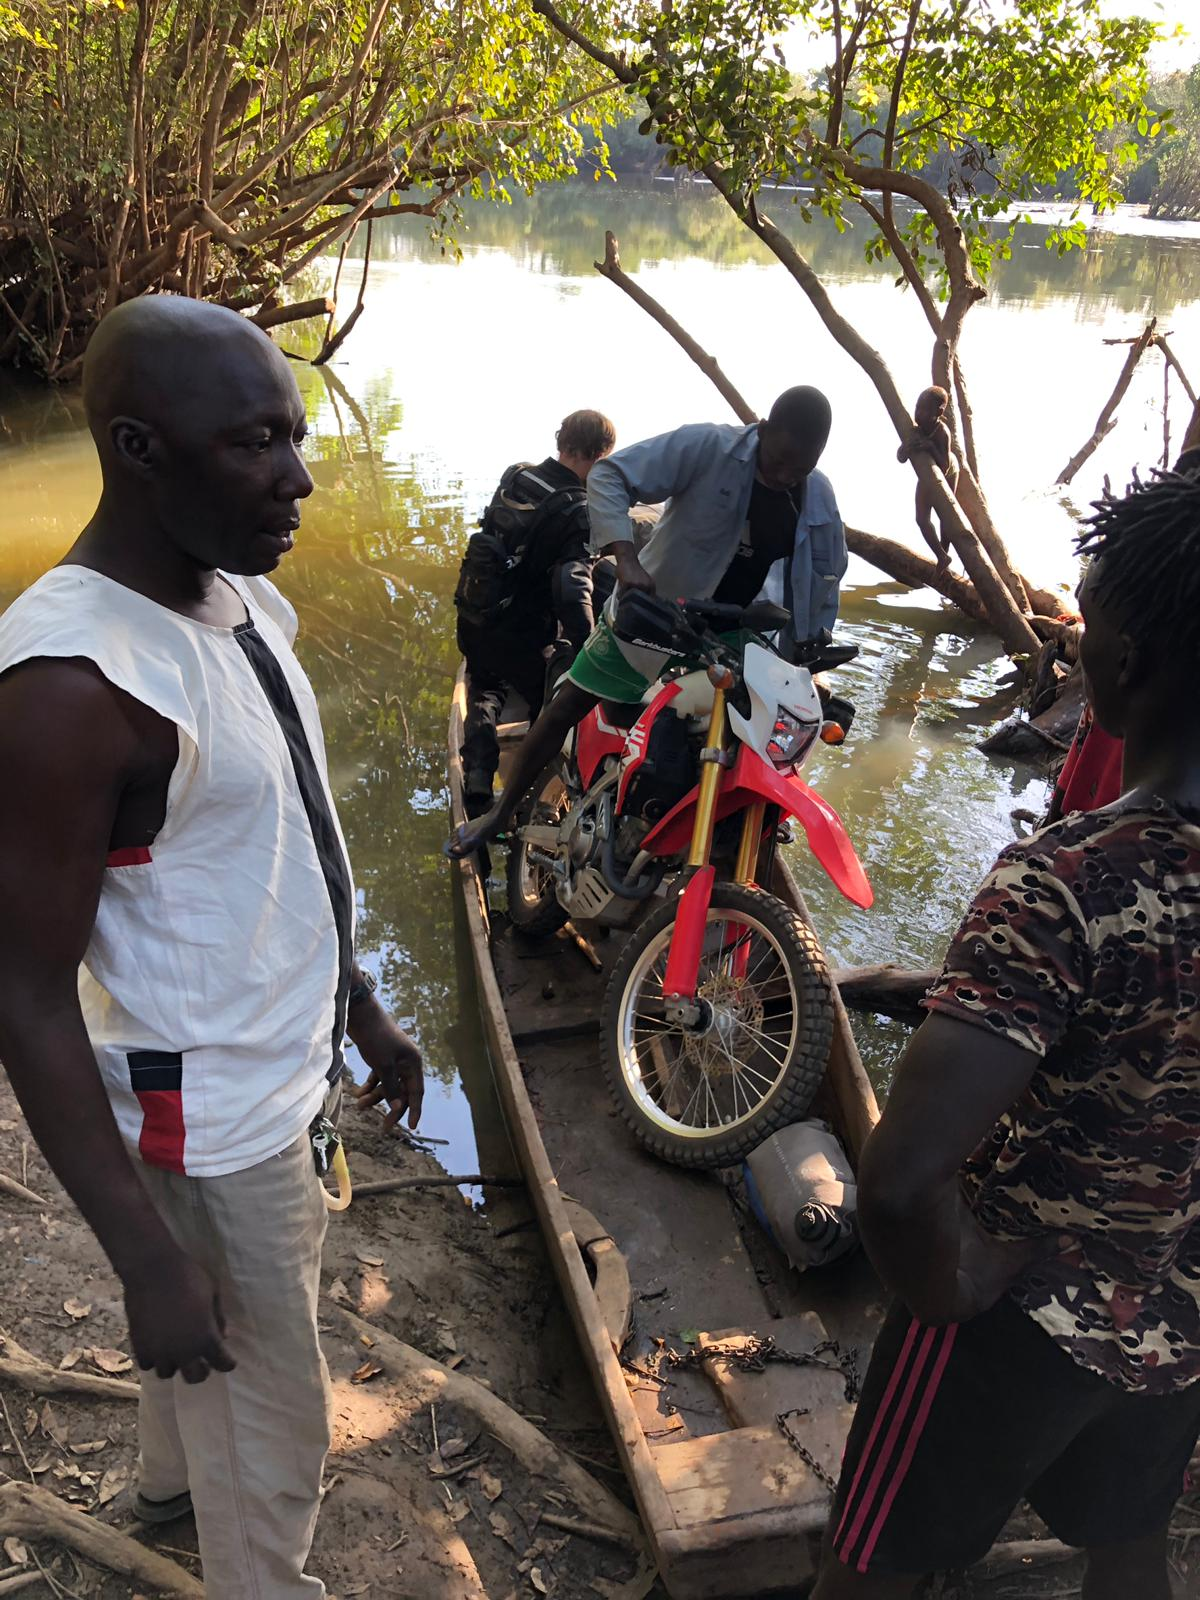 My motorcycle being loaded onto a paddle boat at River Kogon when leaving Guinea-Bissau from Contabane to enter Guinea.